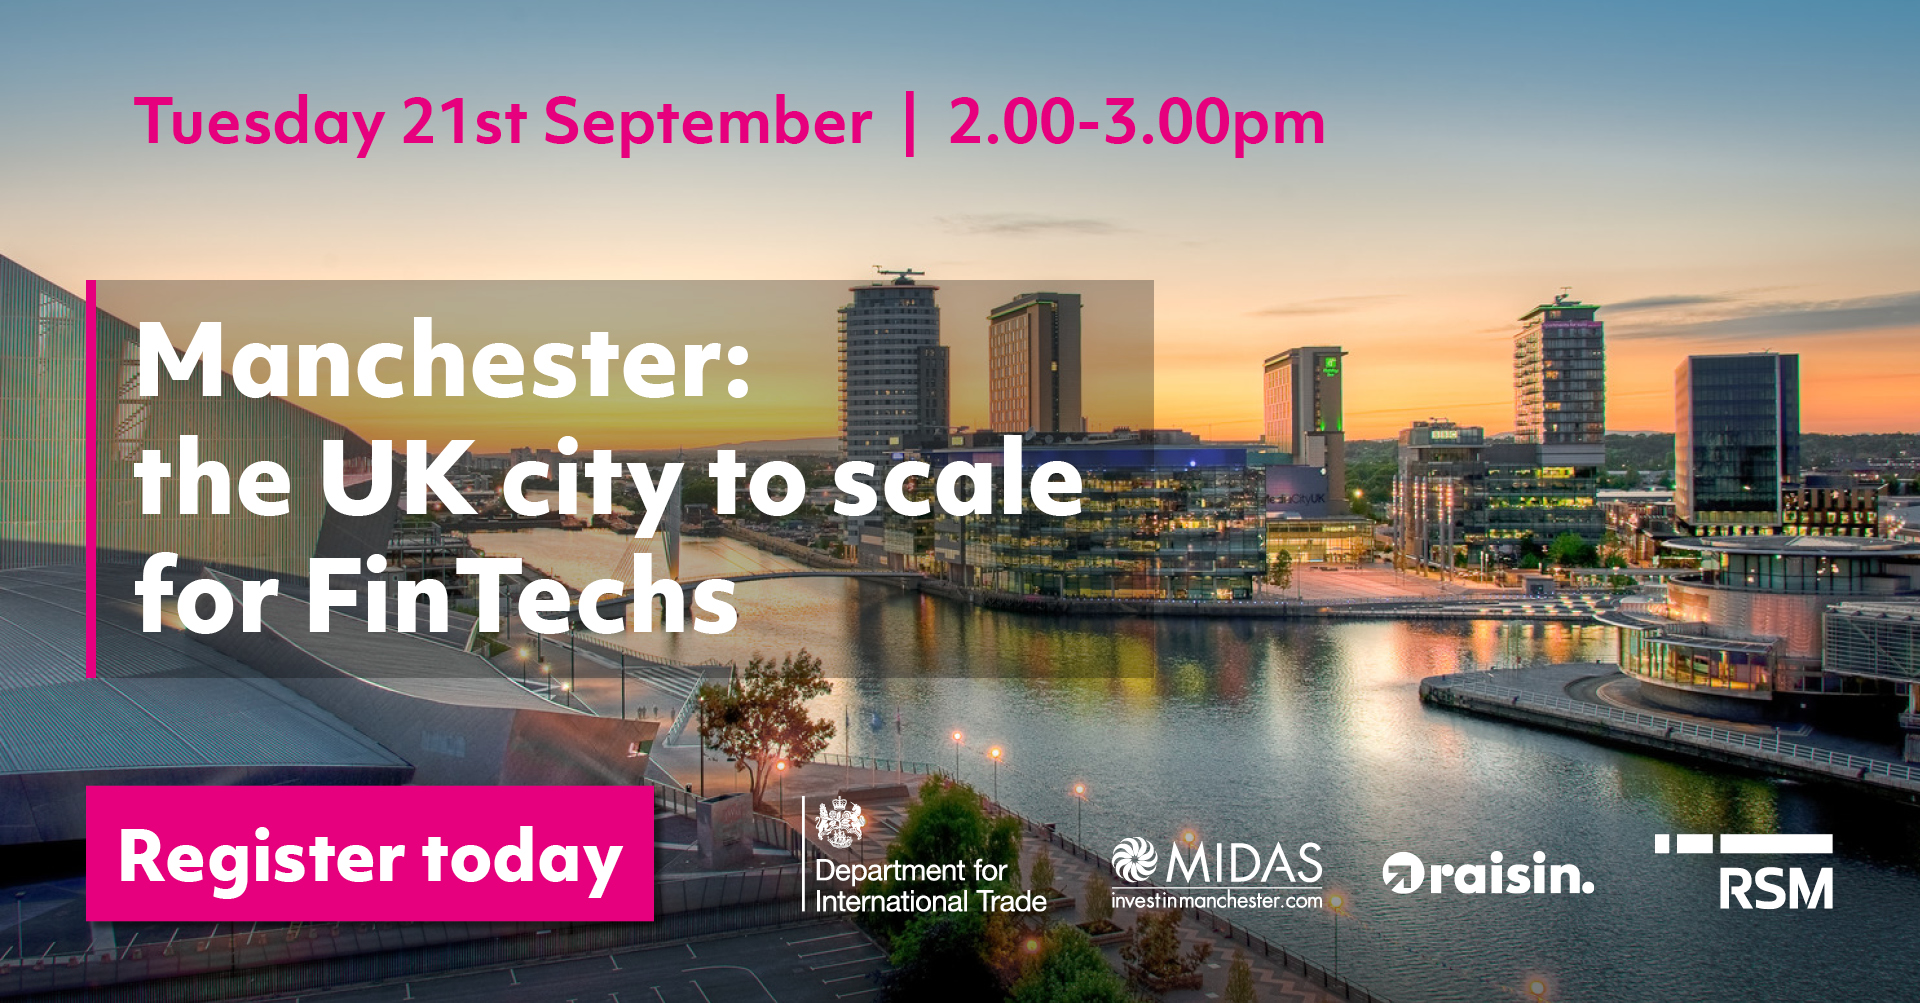 Manchester: the UK city to scale for FinTechs